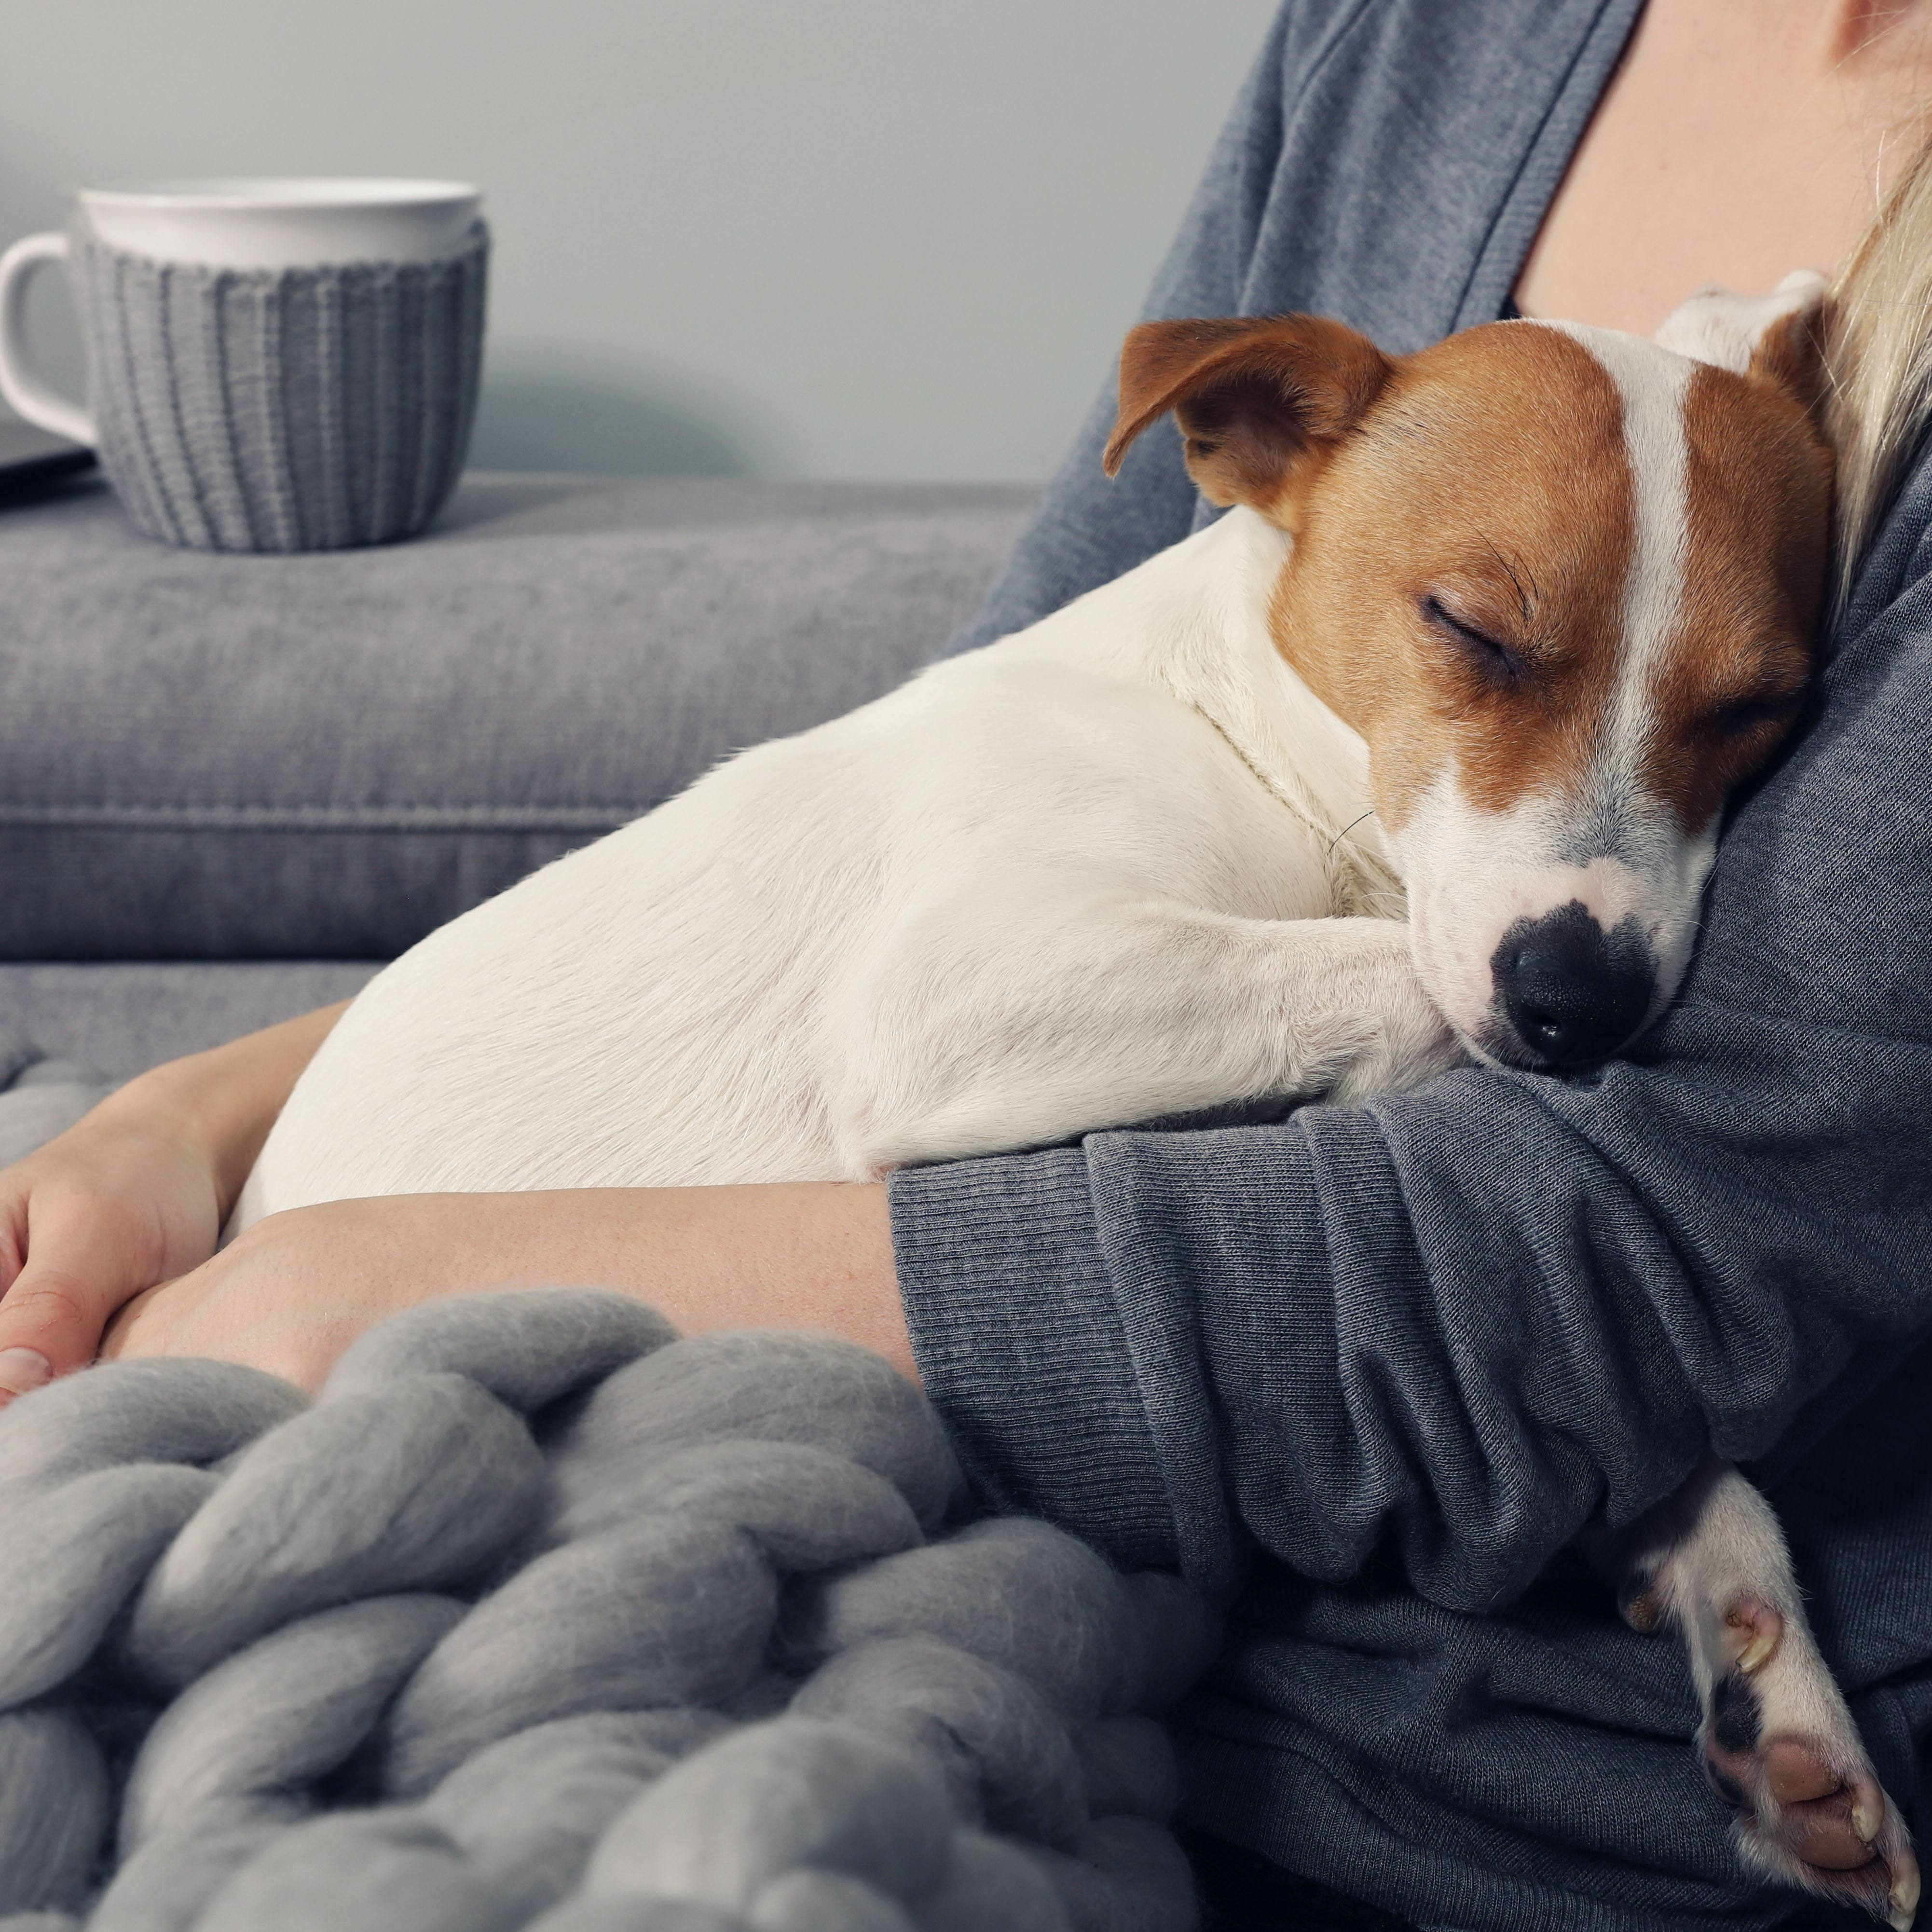 a young woman snuggled up on the couch with a warm blanket, a sleeping dog, and cup of coffee, tea or hot chocolate